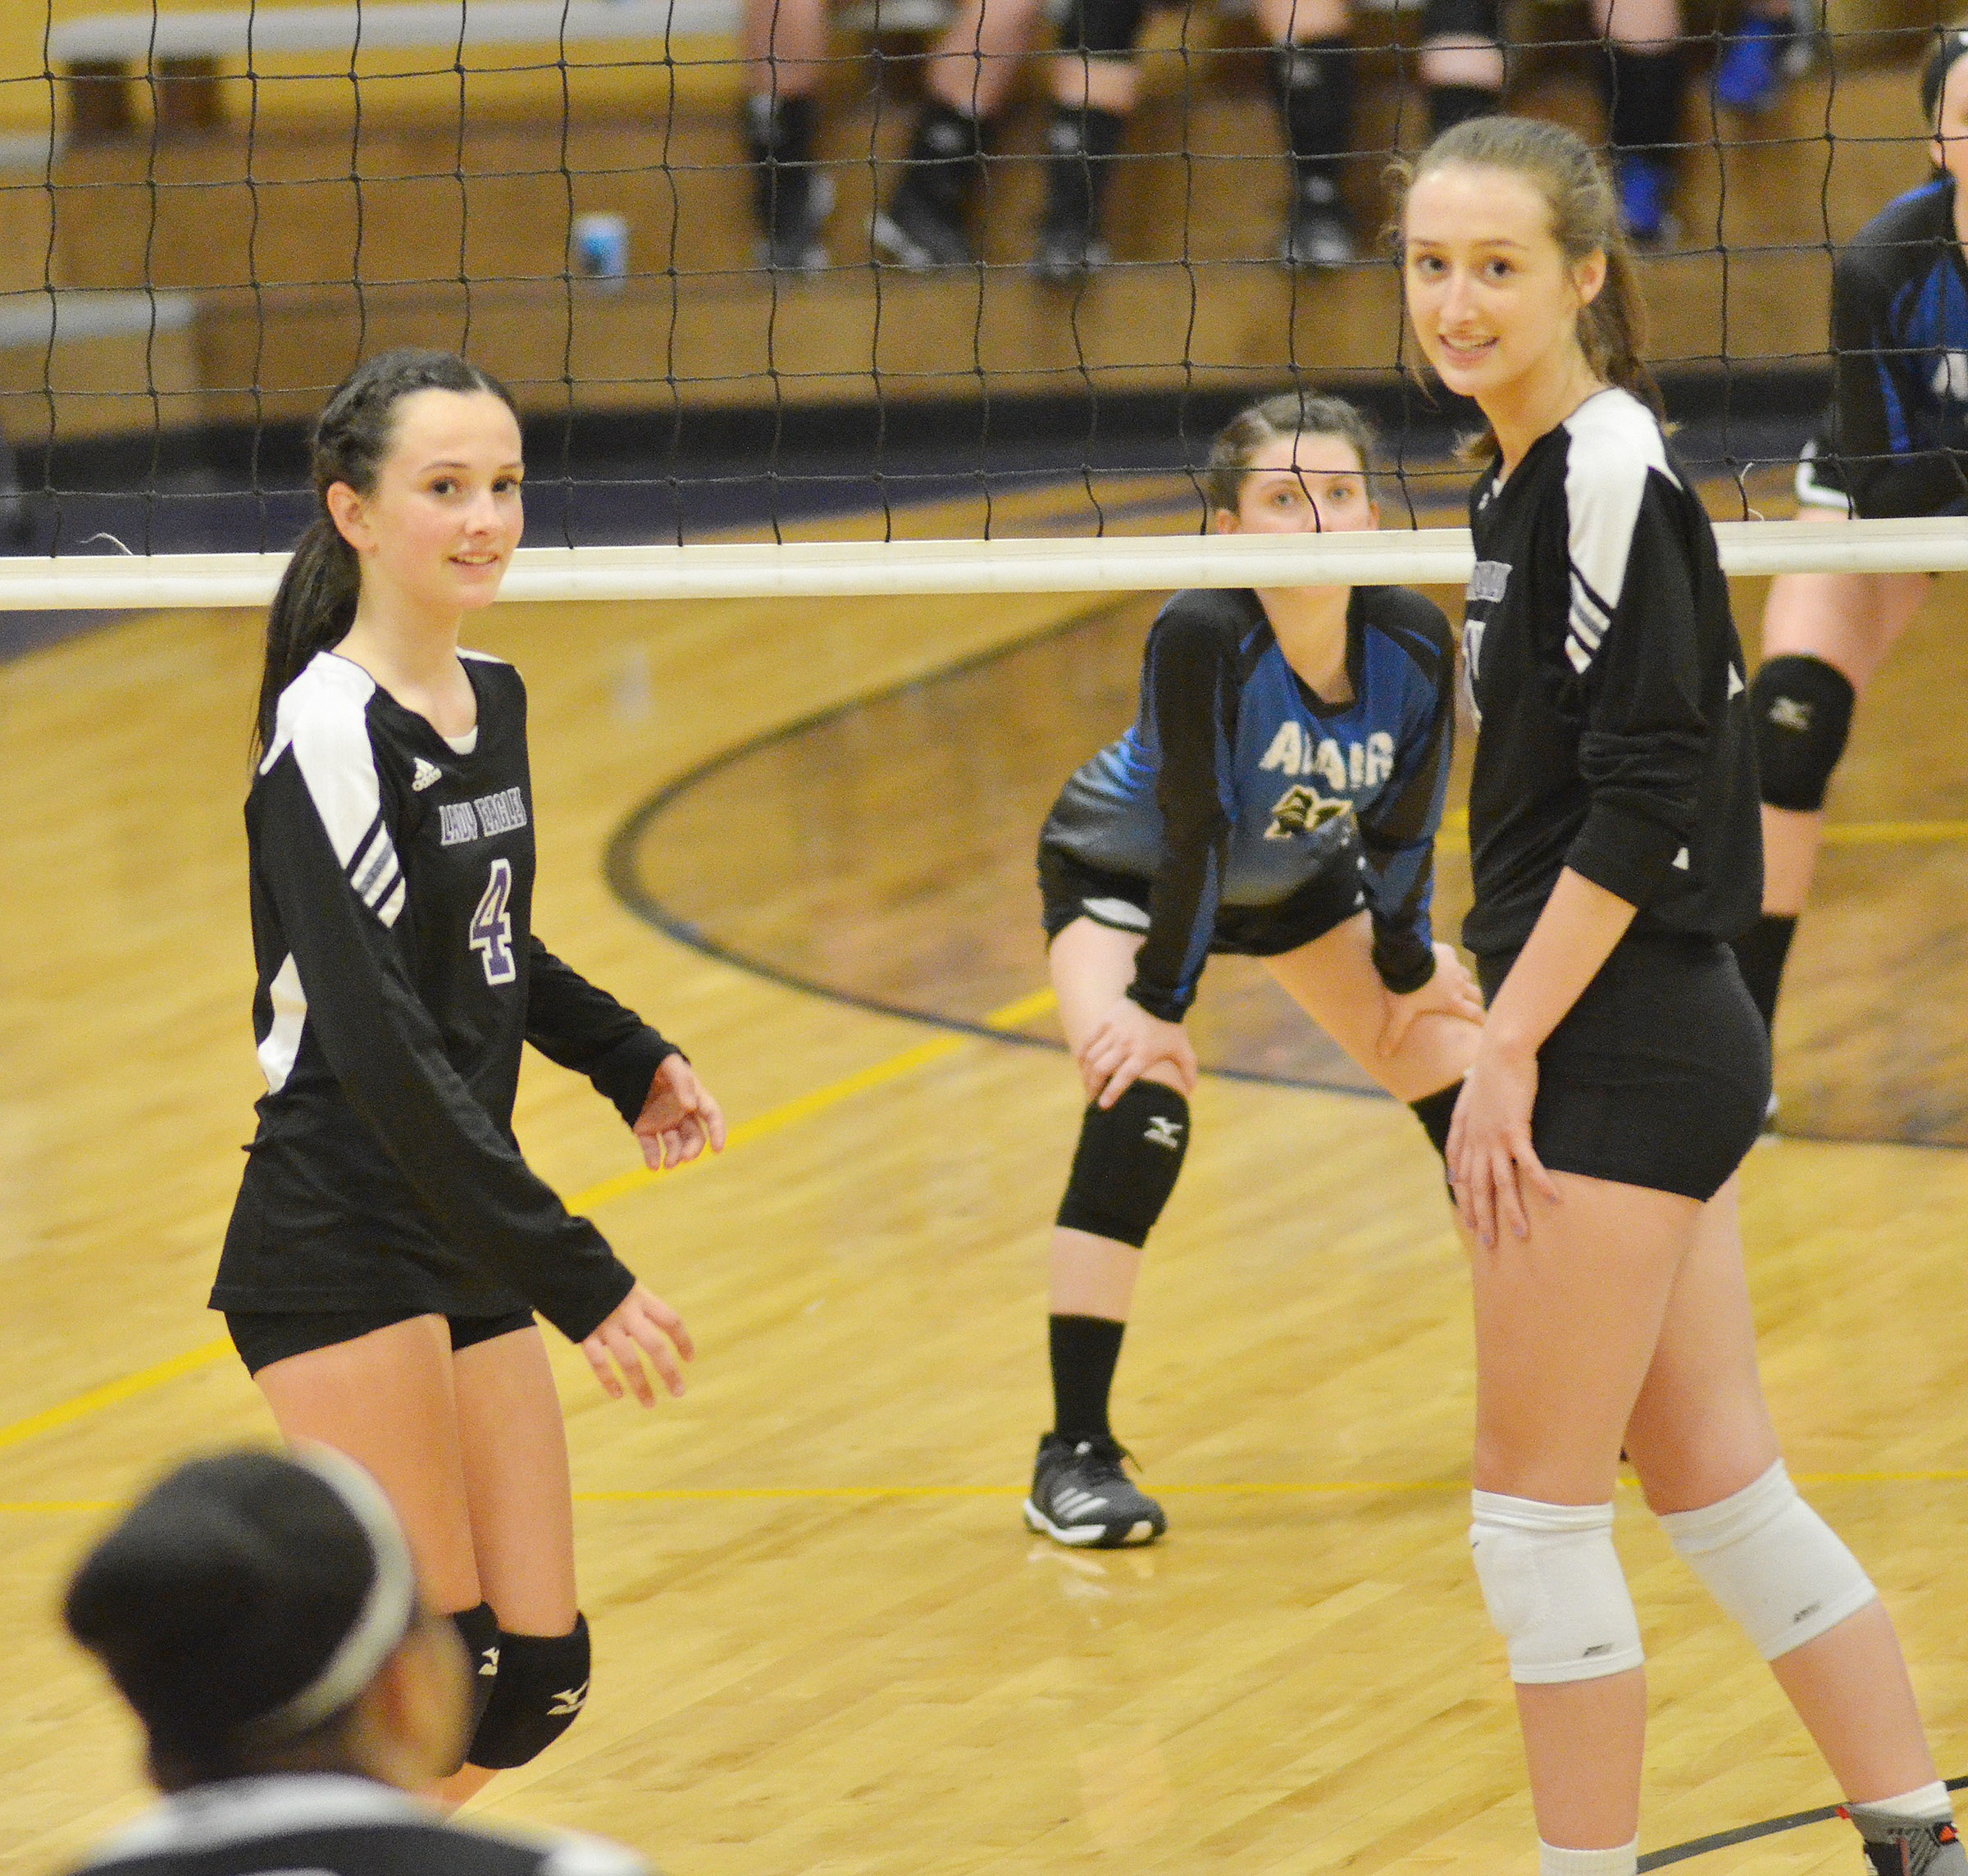 Campbellsville Middle School eighth-grader Sarah Adkins, at left, and junior Samantha Mason watch the serve.